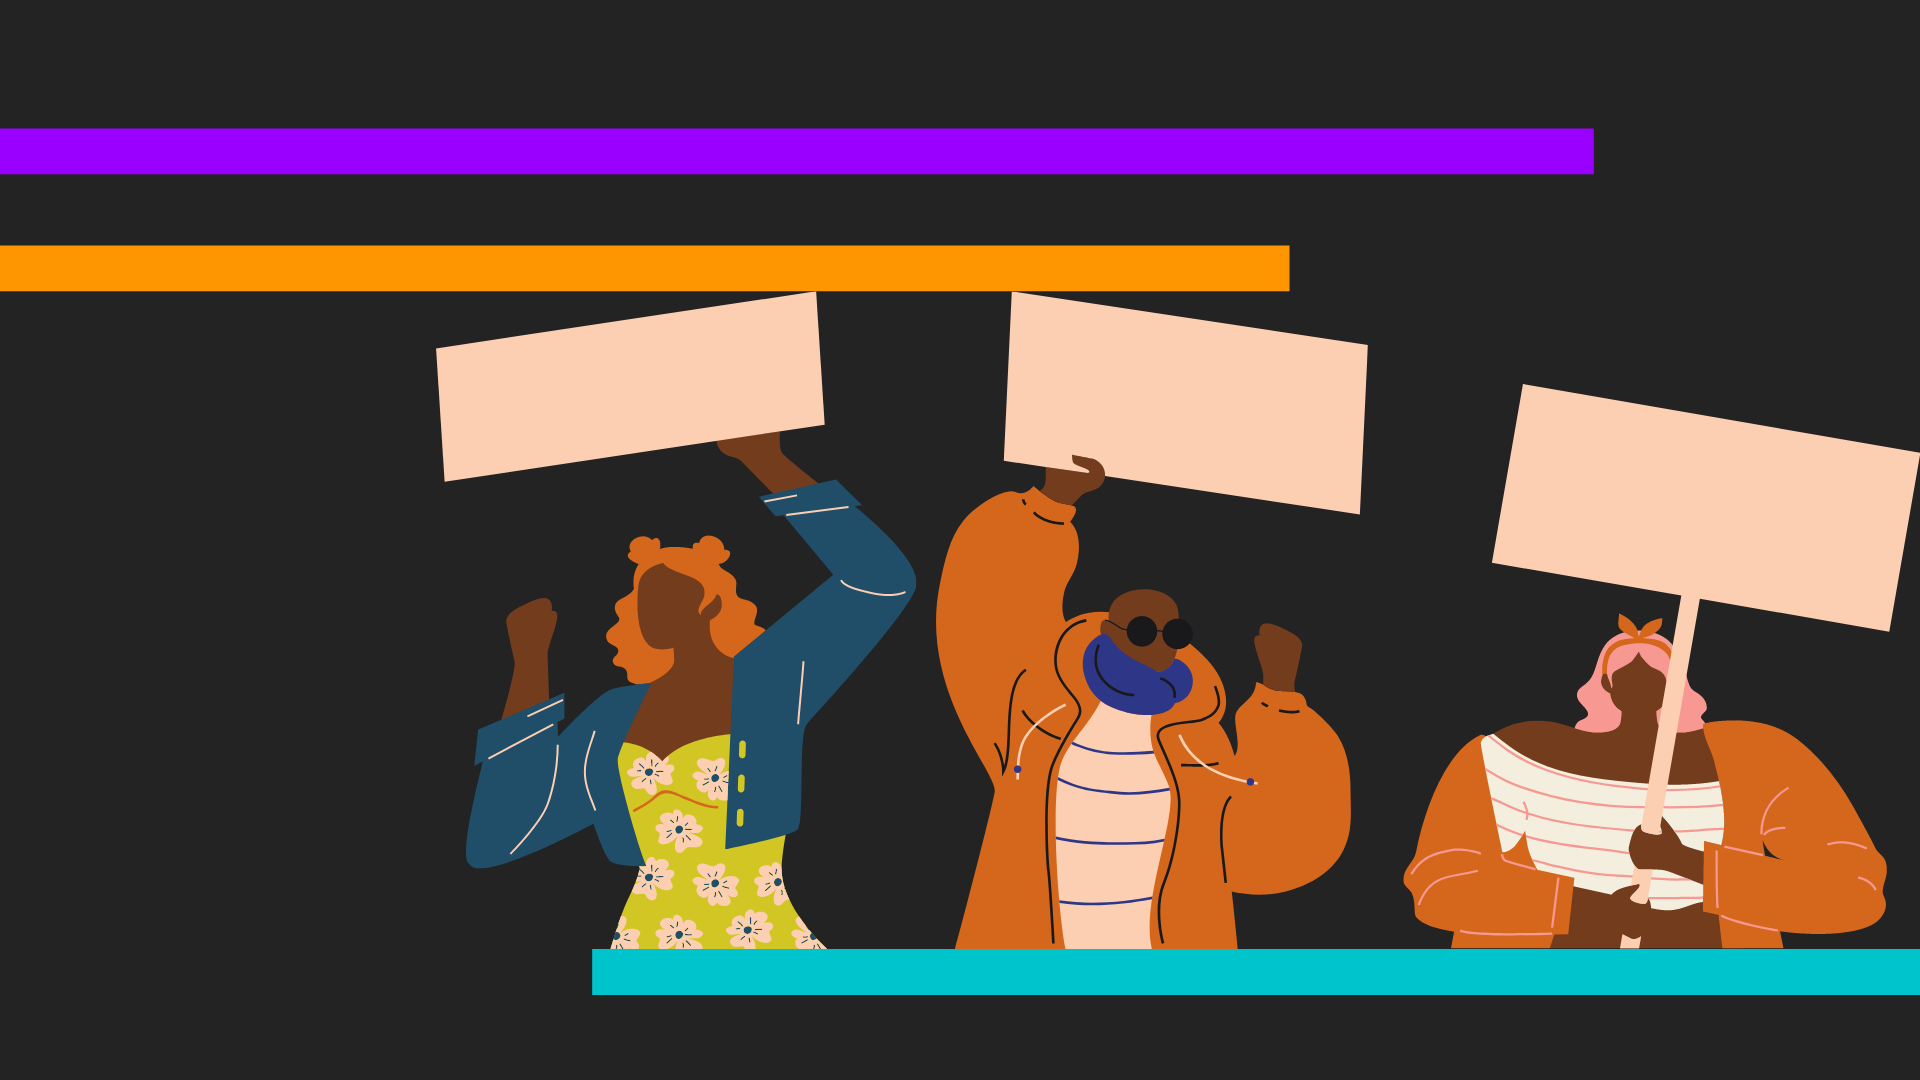 A black, purple, and turquoise background with cartoon-drawn people protesting